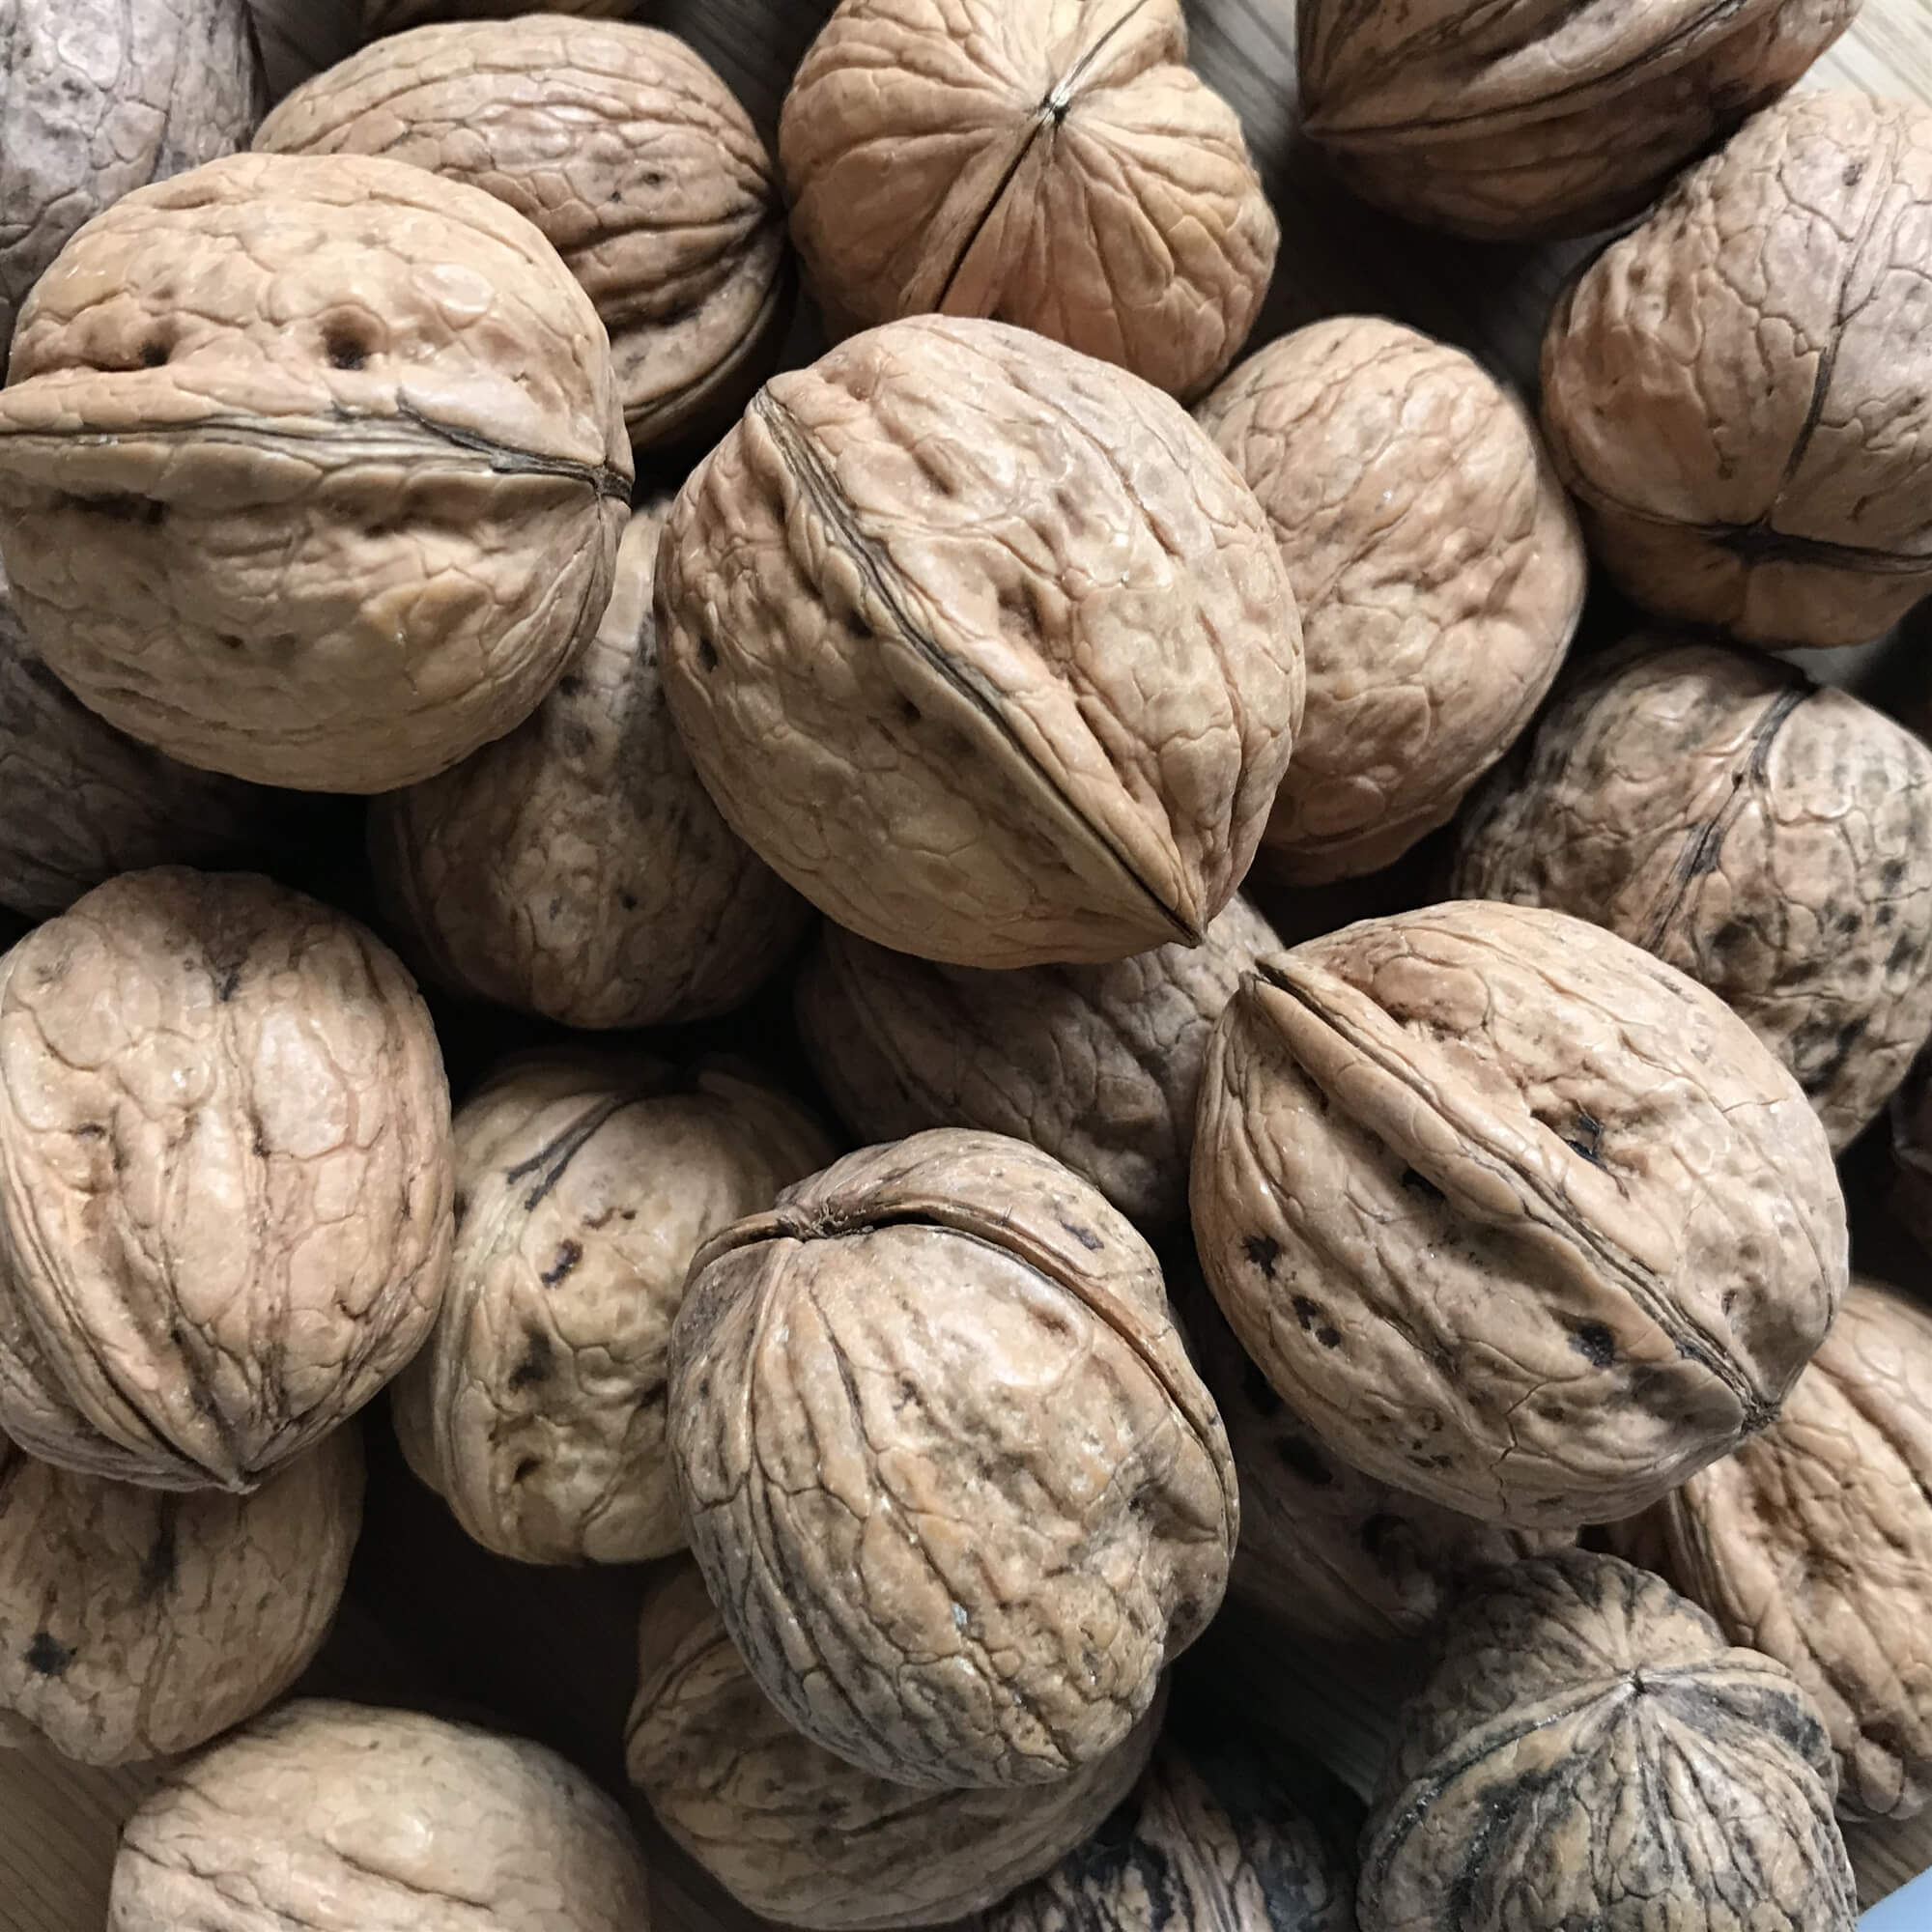 Farm Produced Walnuts - A Walnut is an edible nut often encased in a smooth green husk and mainly grown in California, France and Italy.